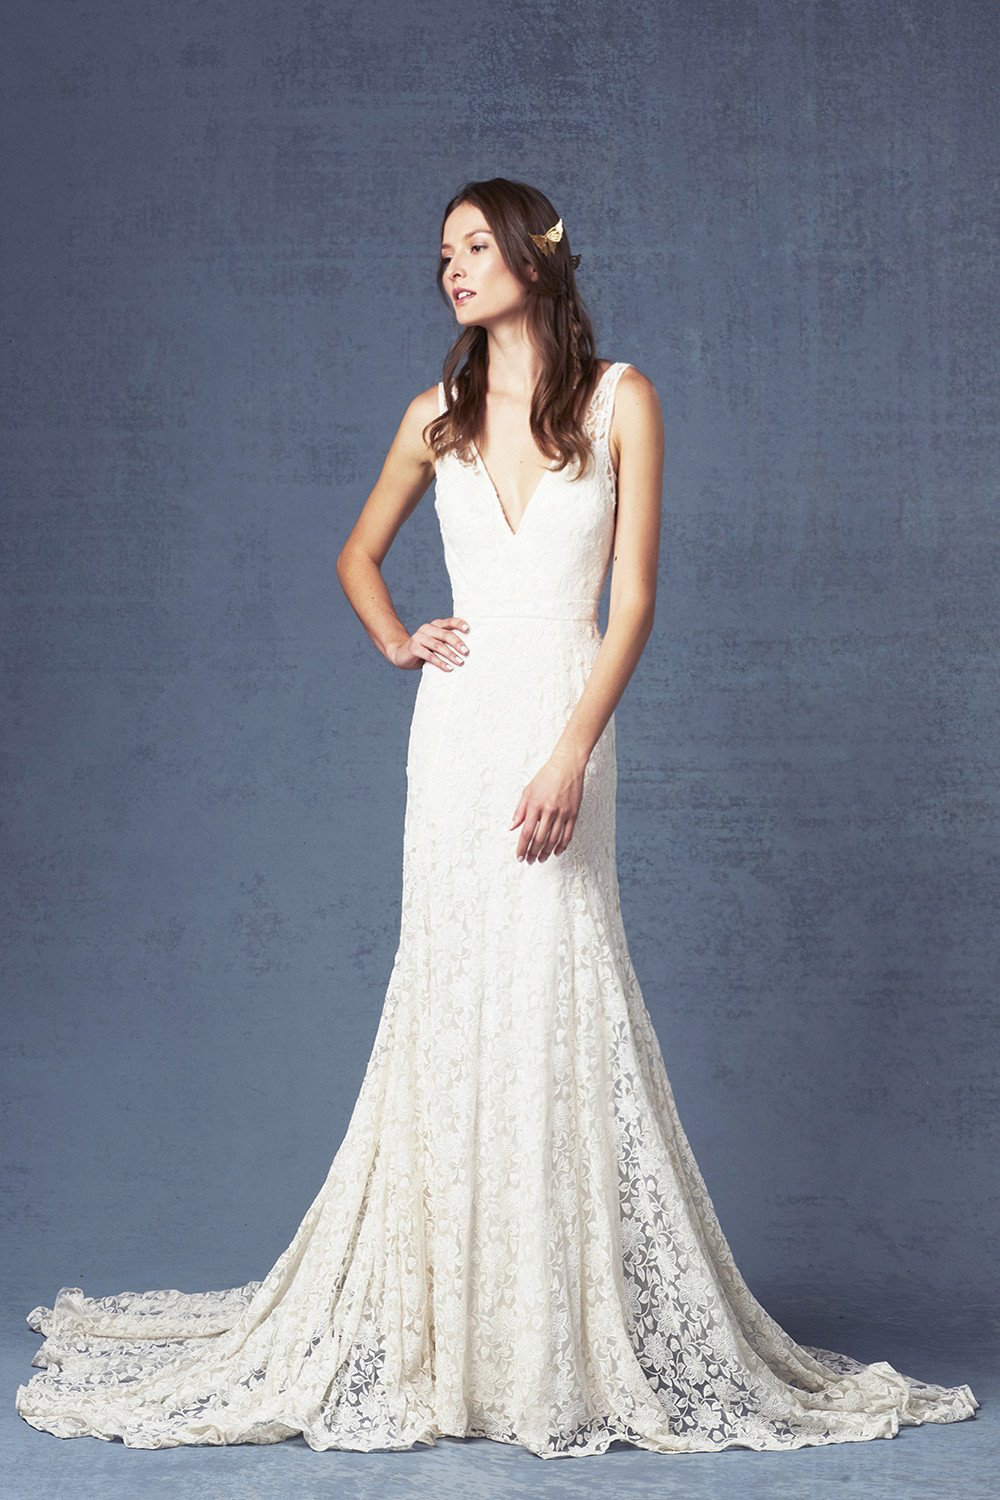 My Dream Wedding Dress Shopping Guide » Wolf & Stag